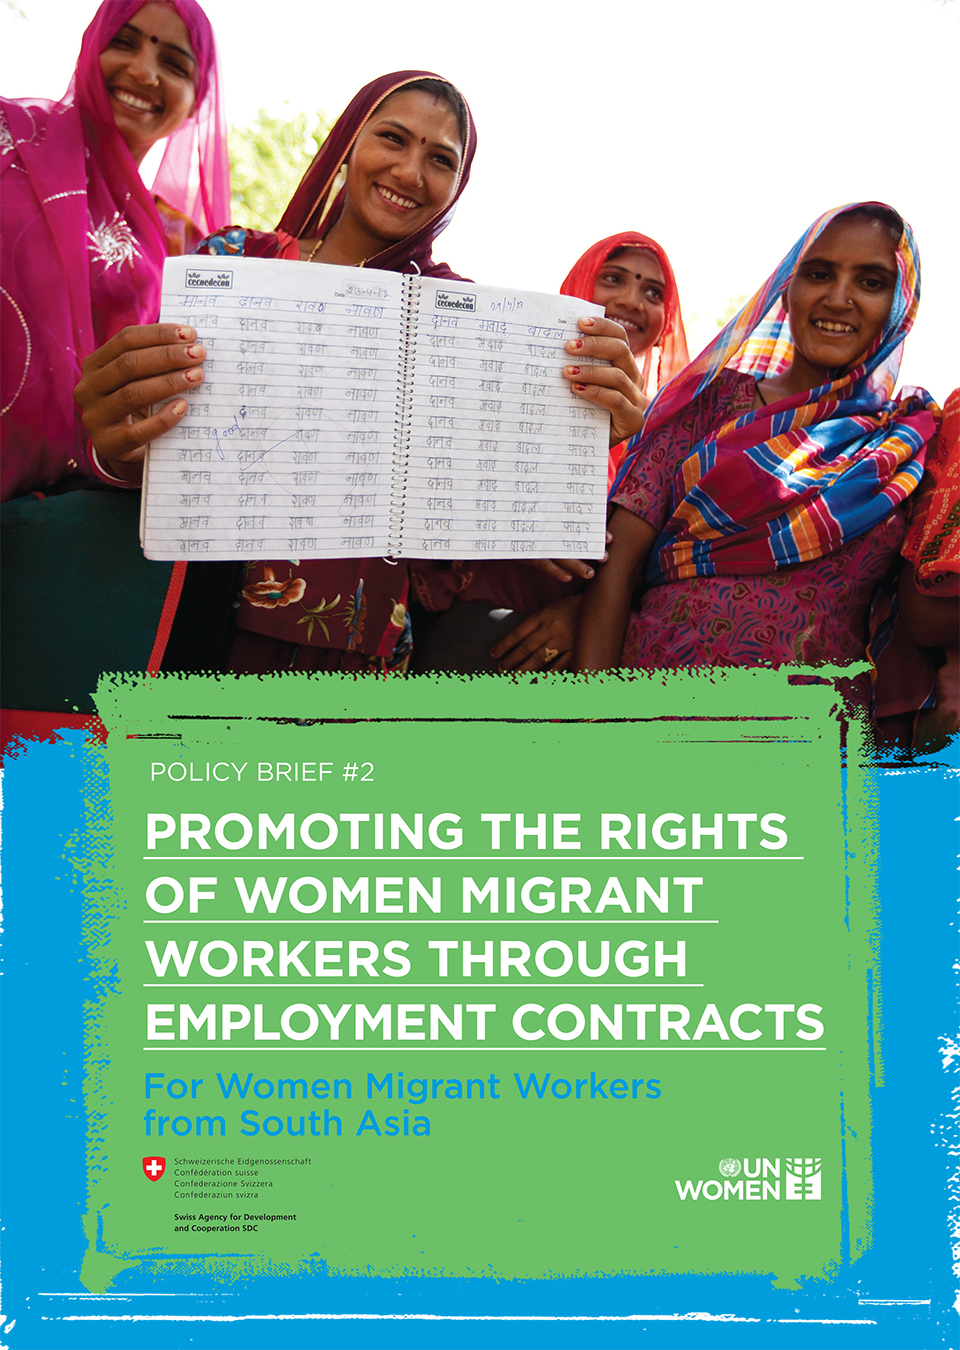 Promoting the Rights of Women Migrant Workers through Employment Contracts